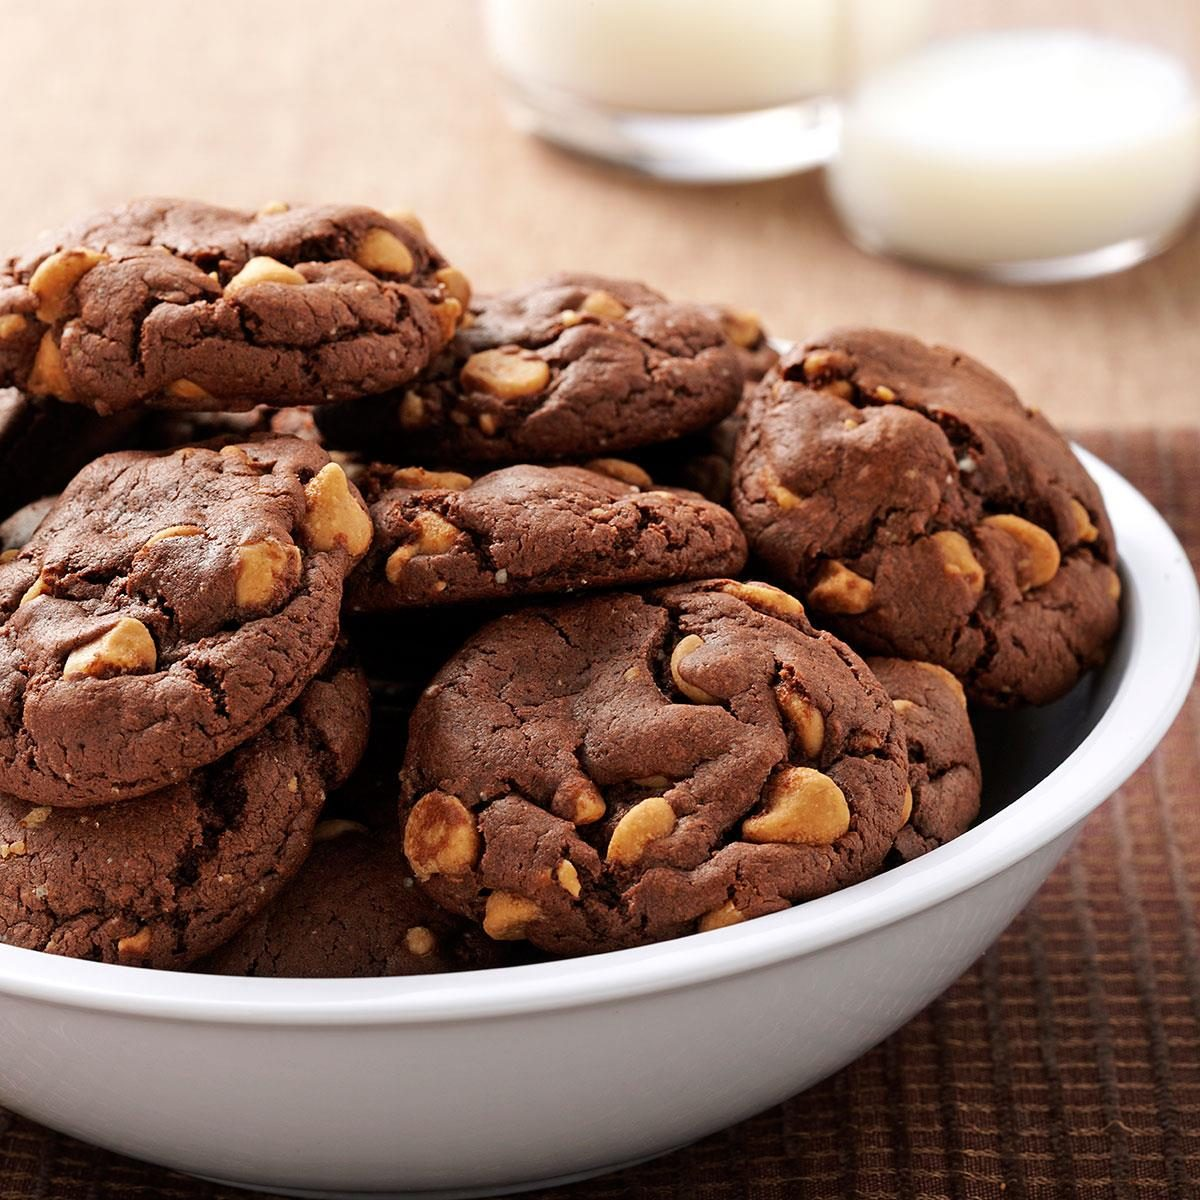 Chocolate Chip Cookie Recipes | Taste of Home